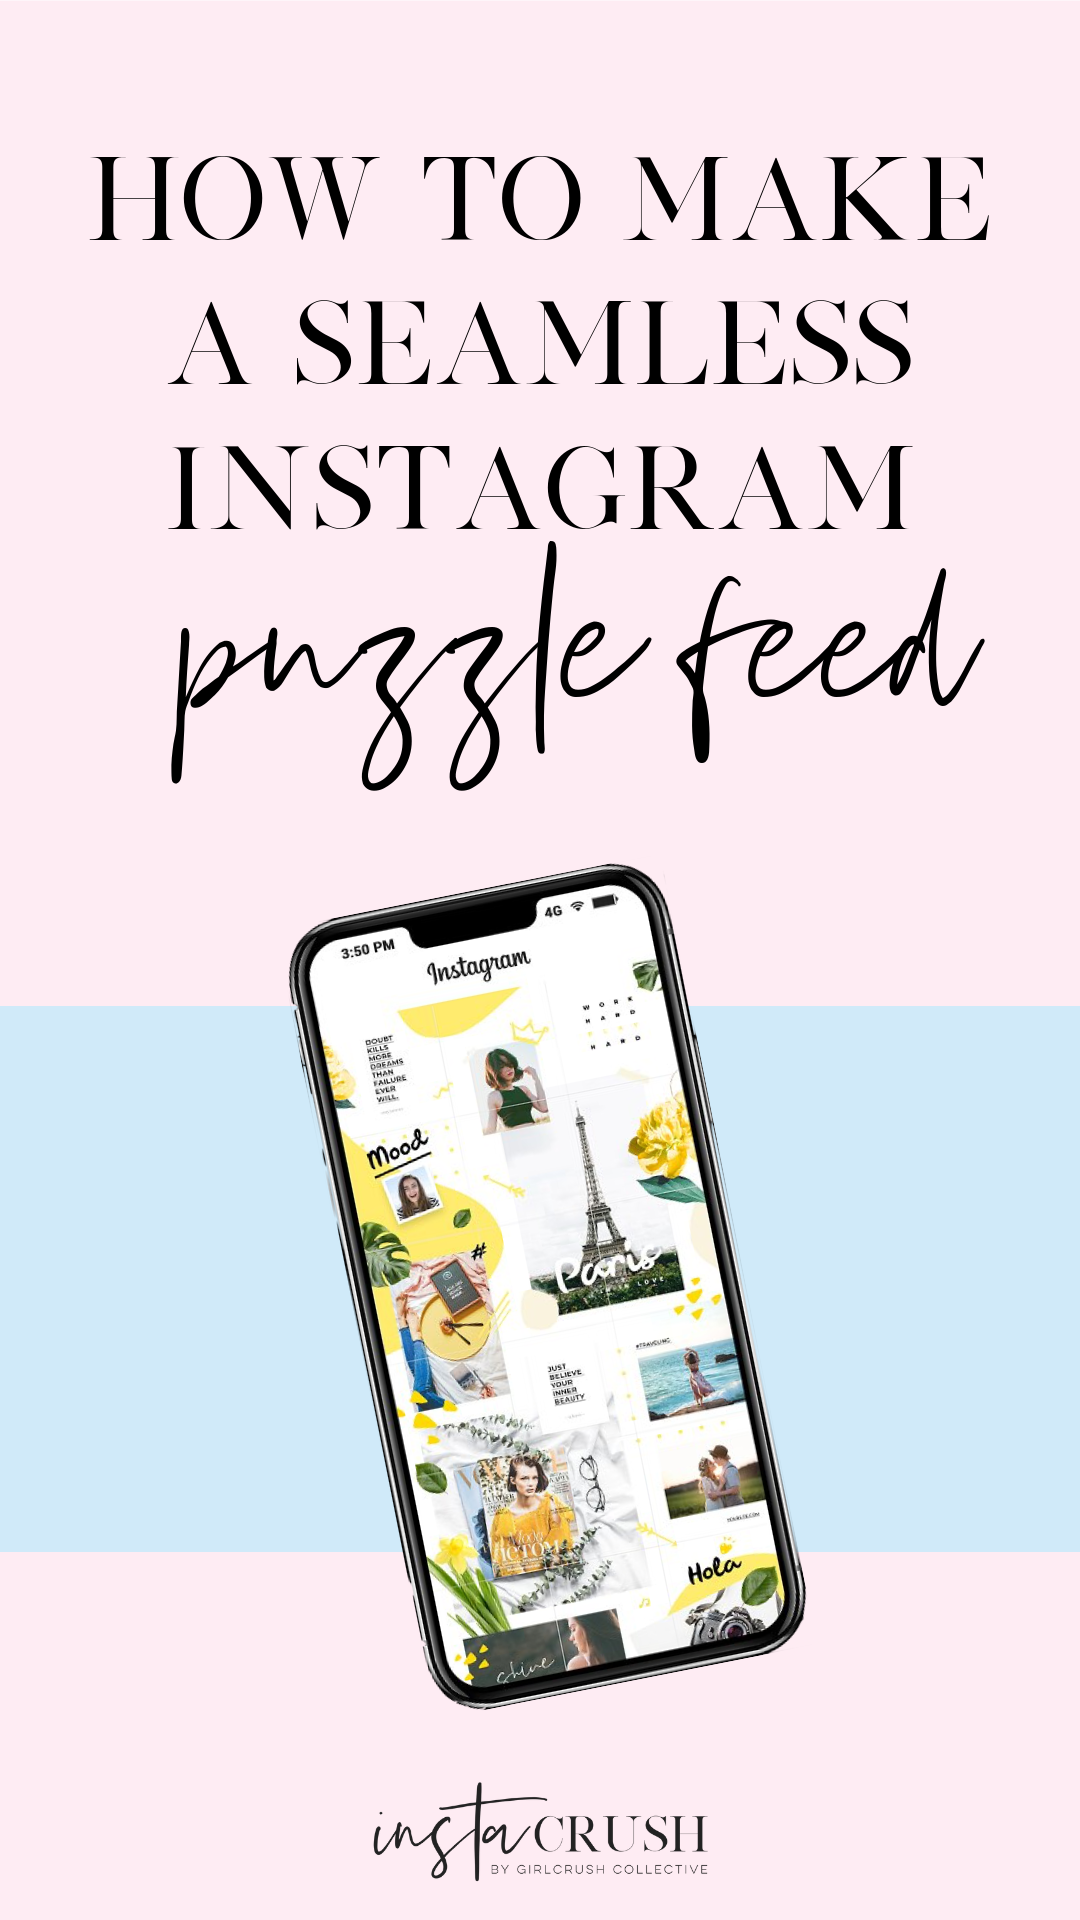 how to make a seamless instagram puzzle feed